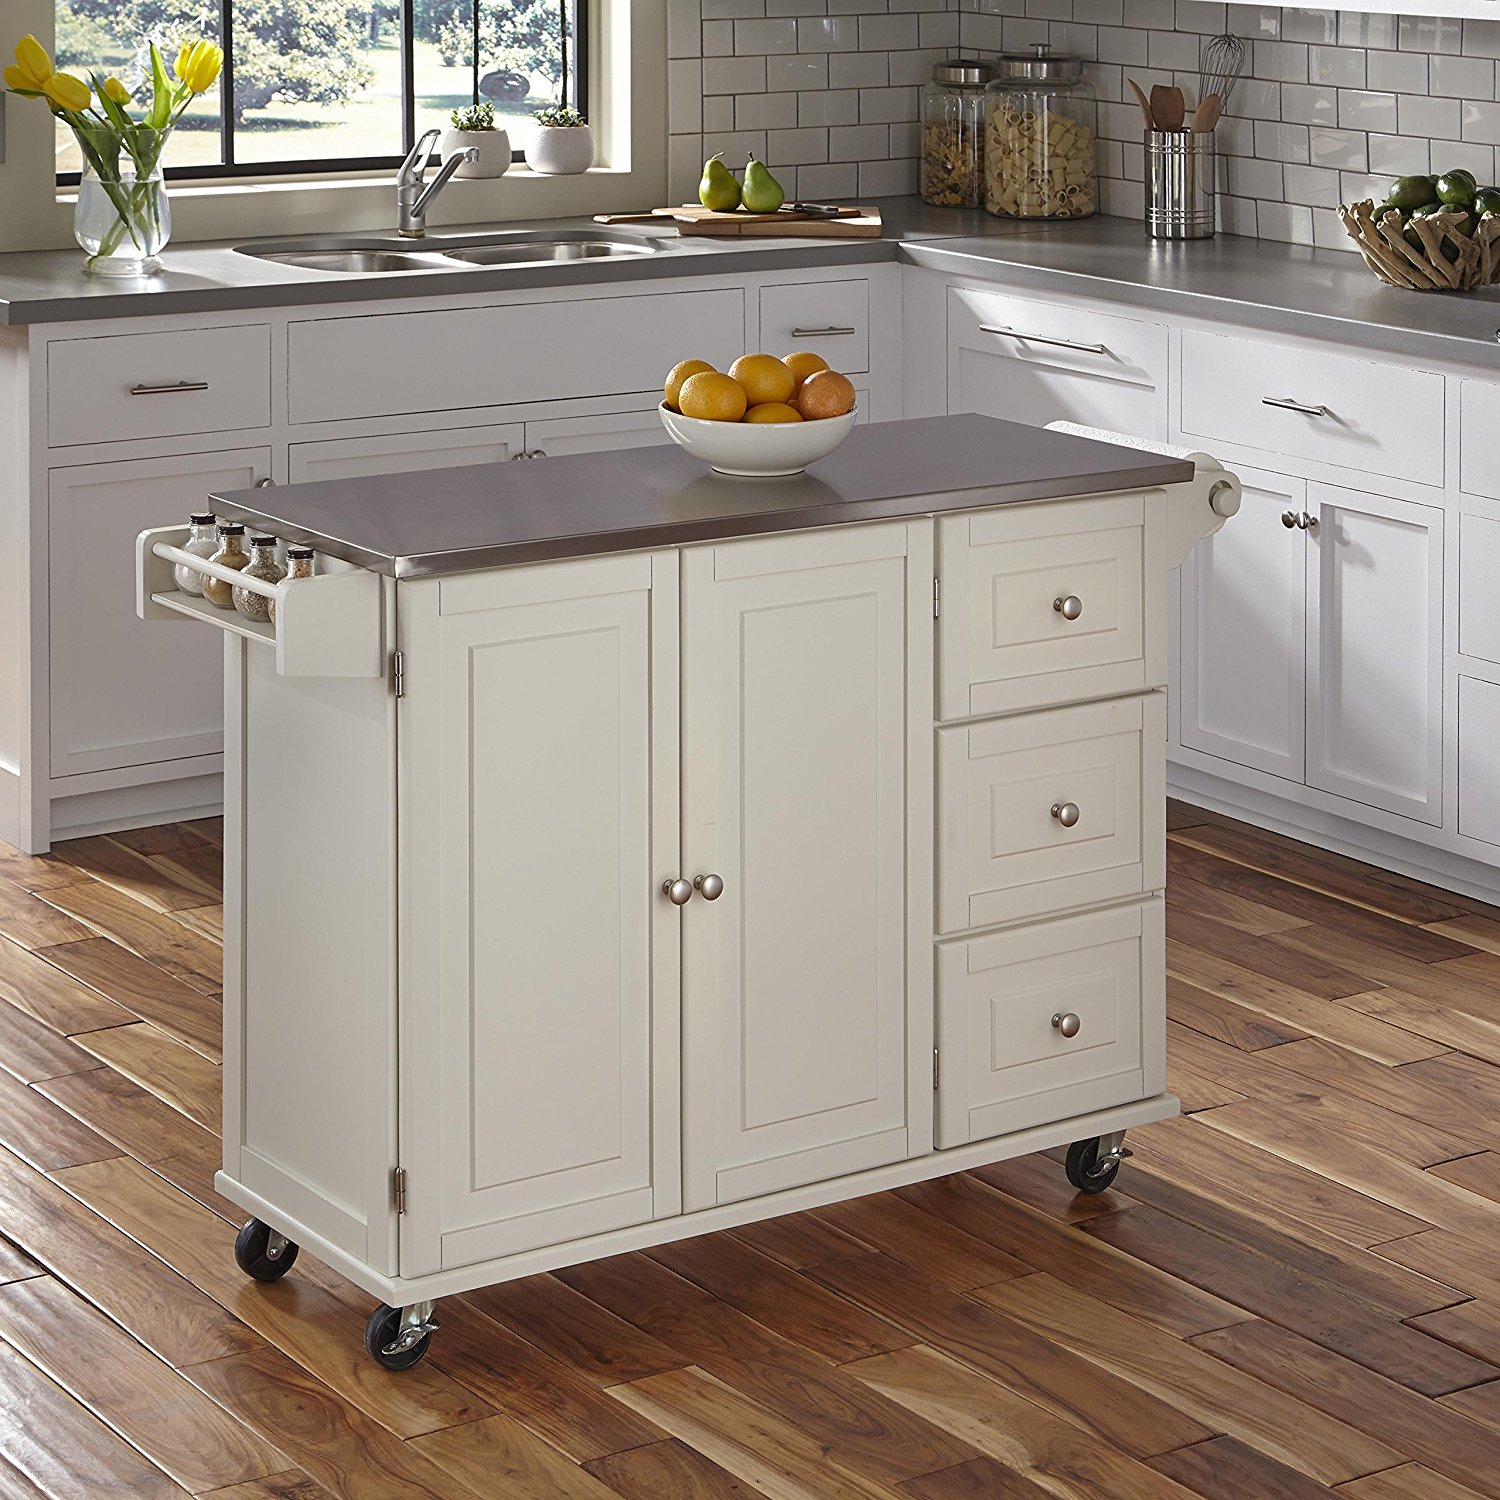 2018 Top 10 Best Kitchen Islands, Carts, Centers & Utility Tables Kitchen Islands Carts on kitchen cart with trash can, kitchen islands product, outdoor kitchen carts, kitchen cart with stools, kitchen storage carts, pantry carts, kitchen organizer carts, designer kitchen carts, kitchen cart granite top cart, kitchen carts product, hotel bell carts, kitchen islands from lowe's, study carts, kitchen bar carts, kitchen islands with seating, library carts, kitchen cart with granite top, small kitchen carts,